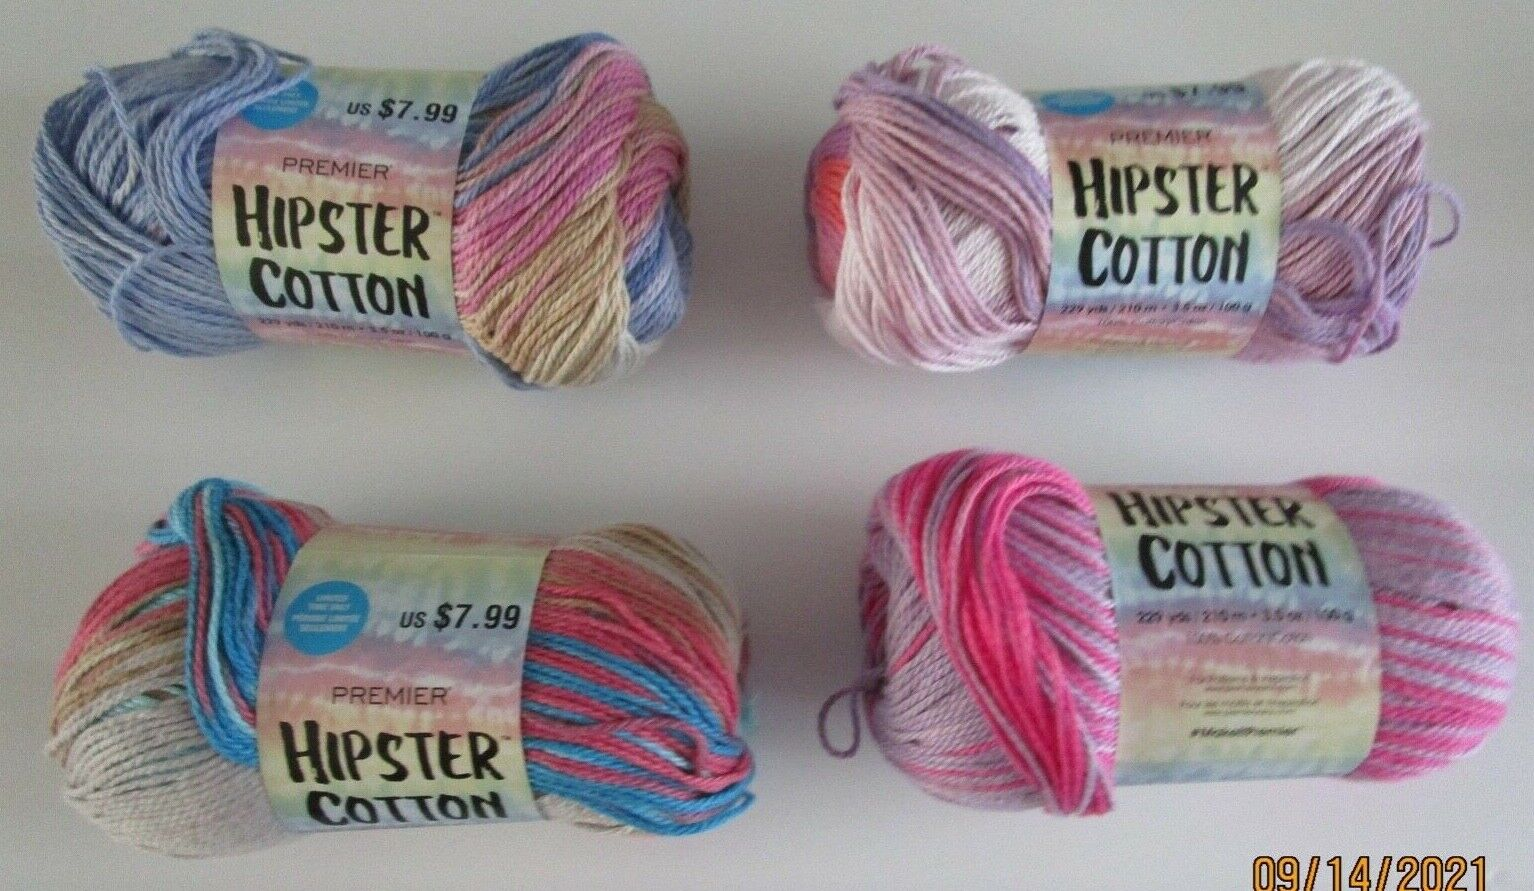 PREMIER HIPSTER COTTON..4 COLORS TO CHOOSE FROM - $5.75